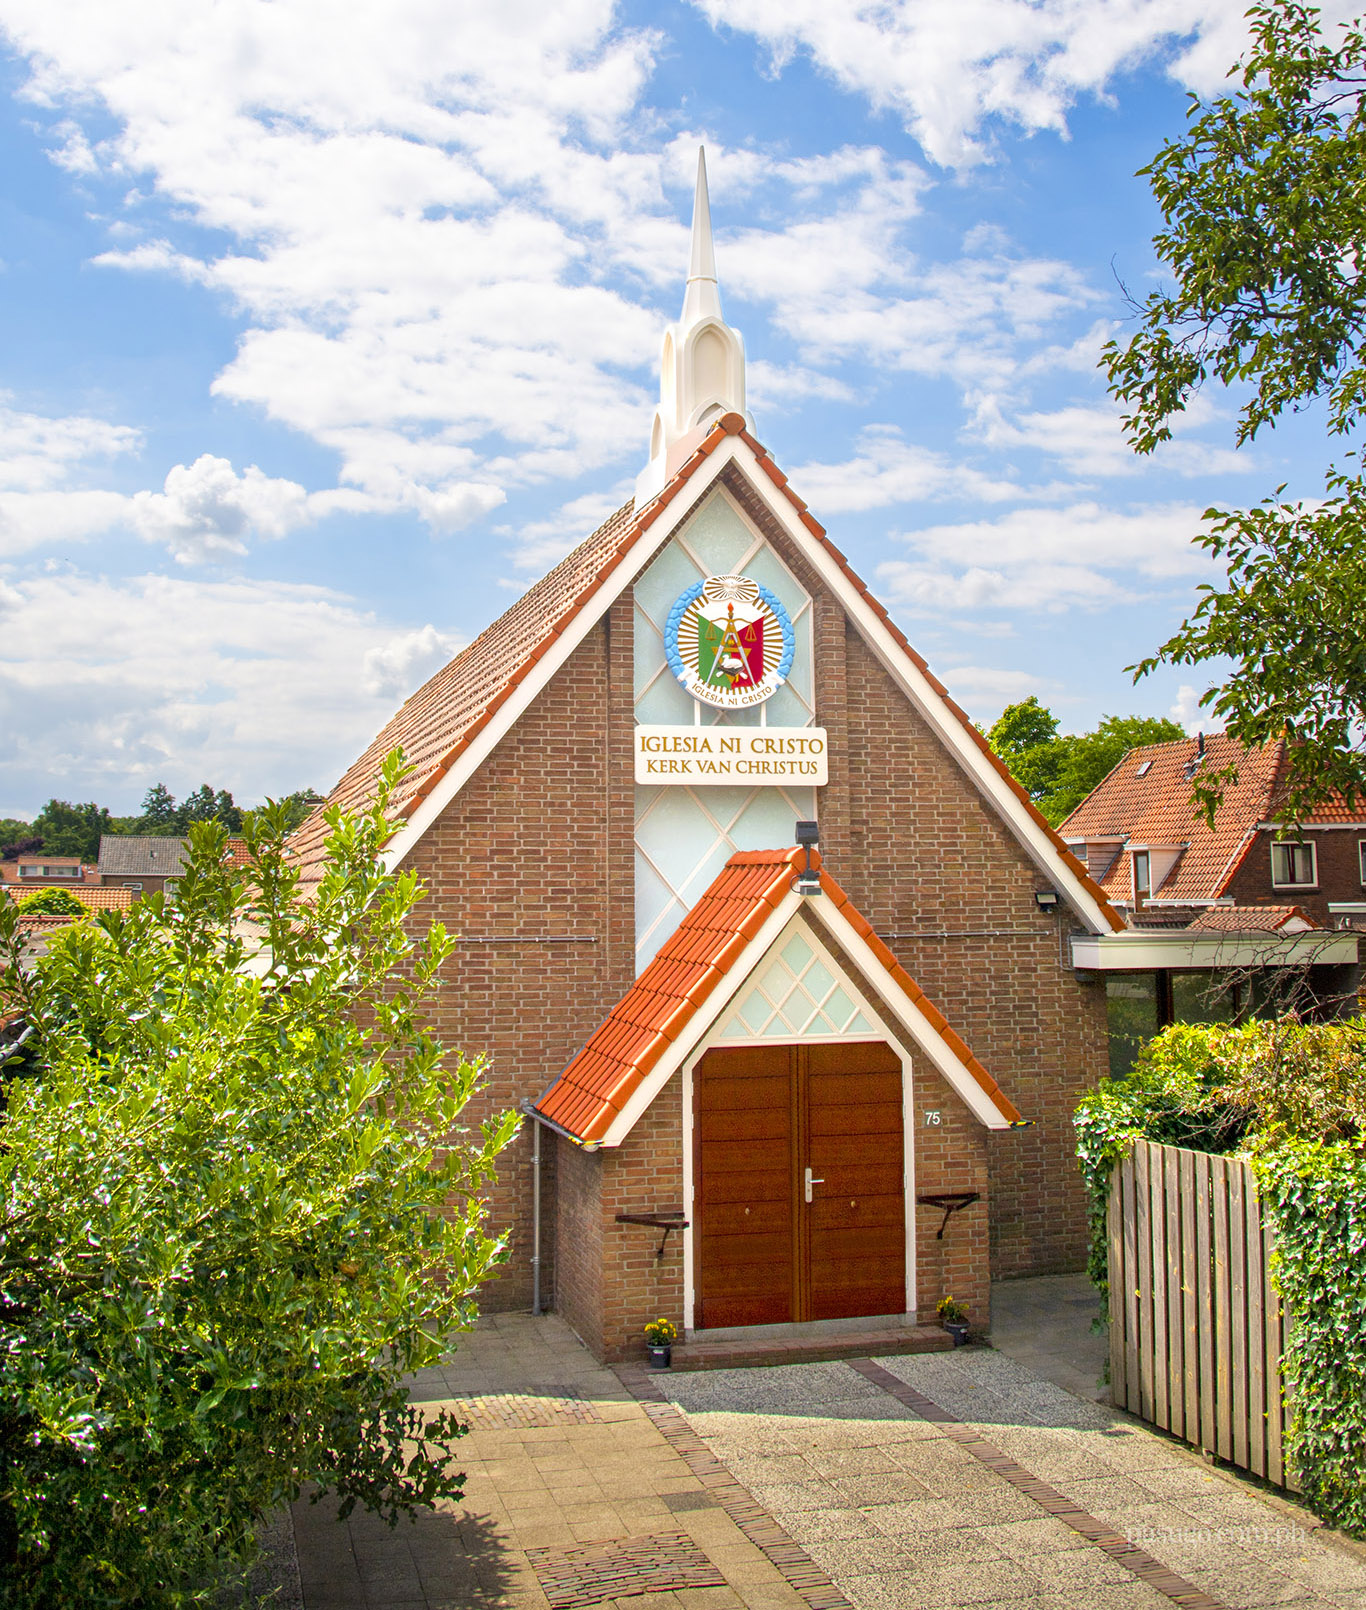 Rotterdam Congregation house of worship in the Neatherlands dedicated to God on July 7, 2019